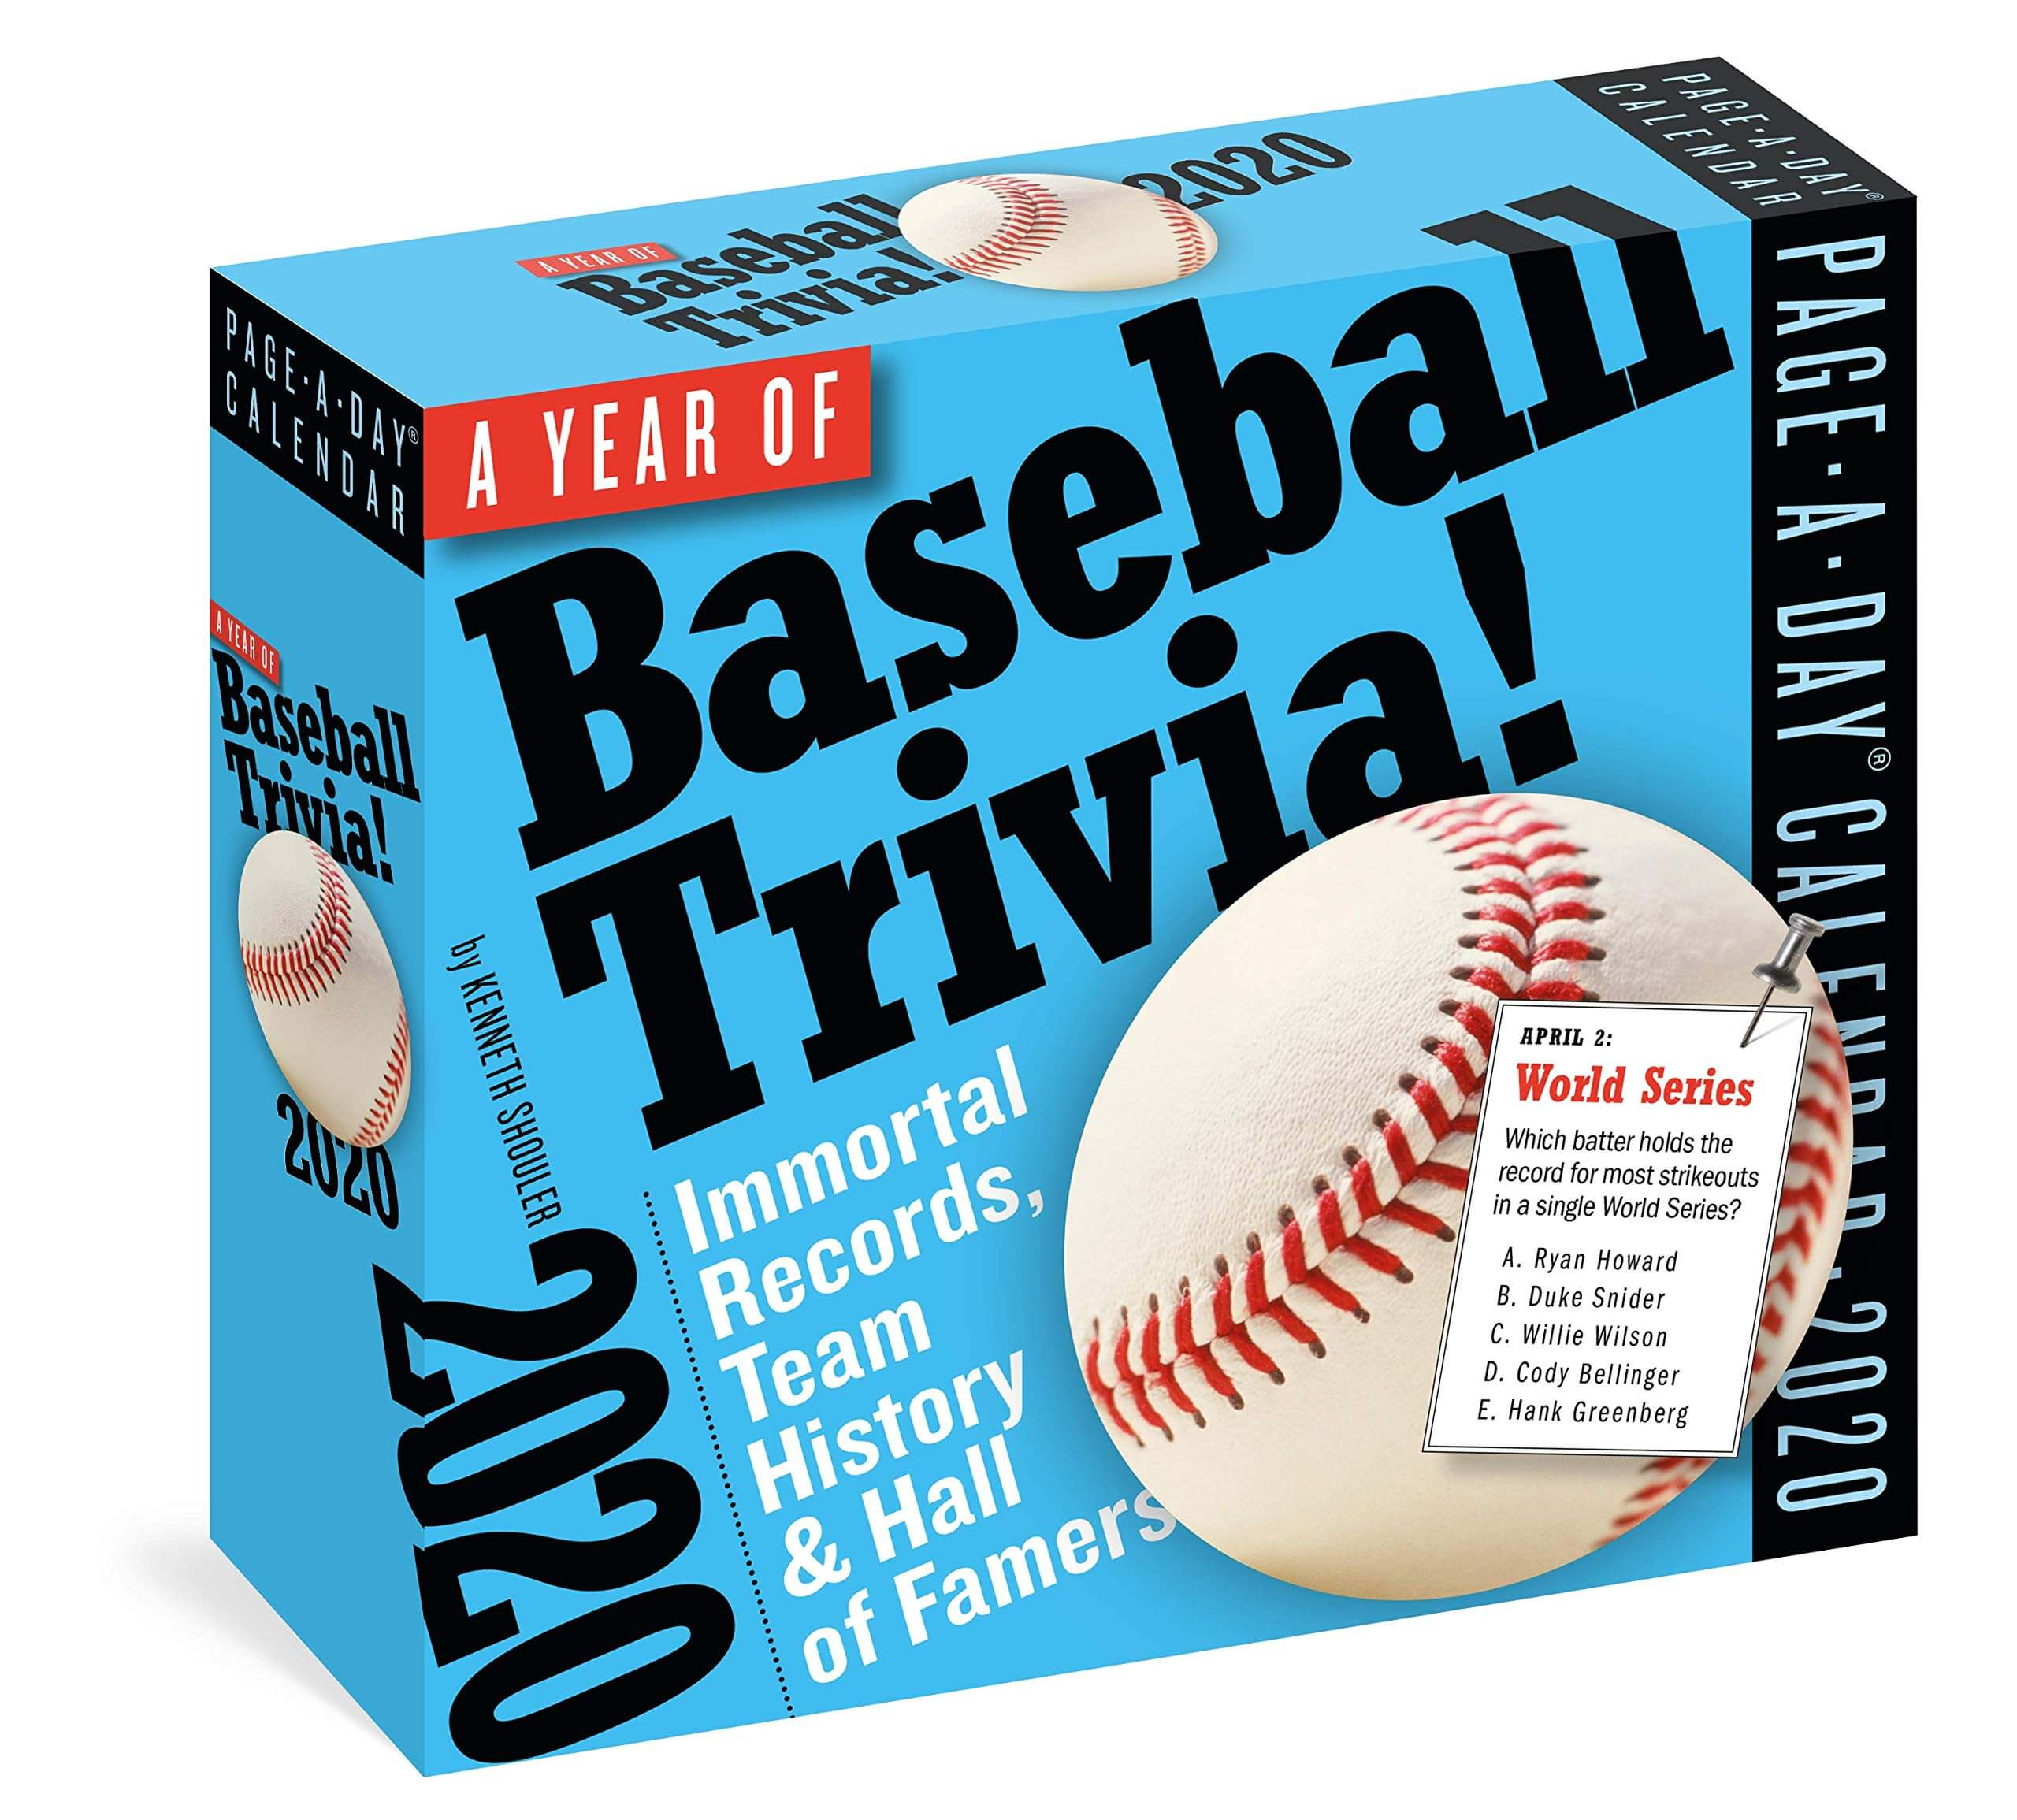 A Year of Baseball Trivia!